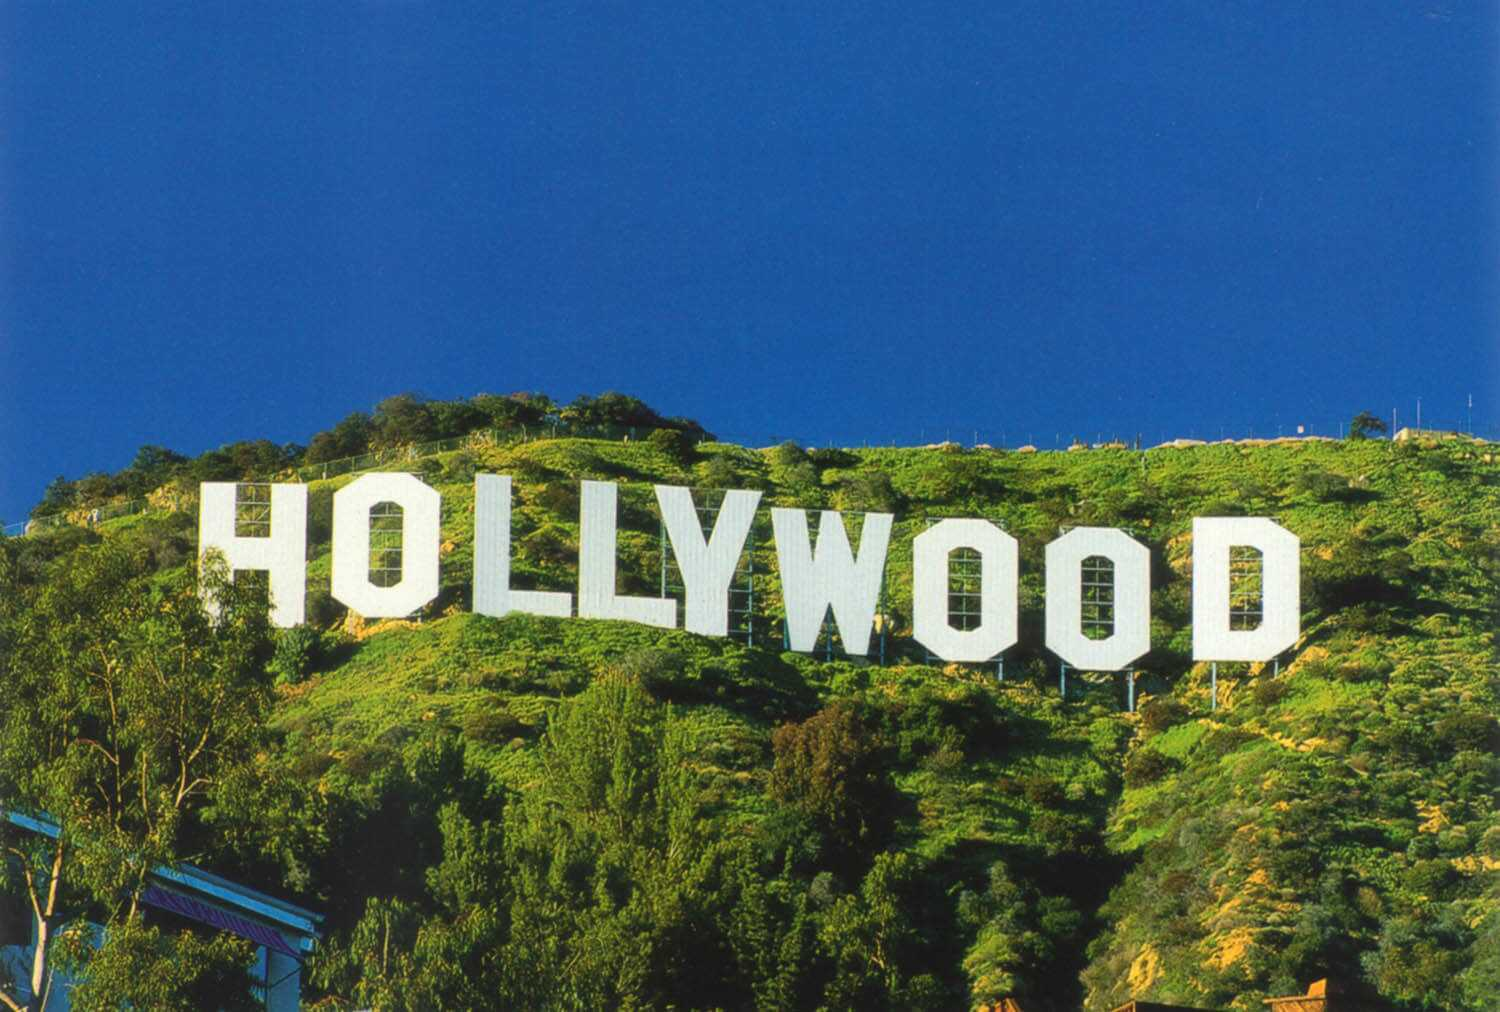 003-hollywoodsign_plus